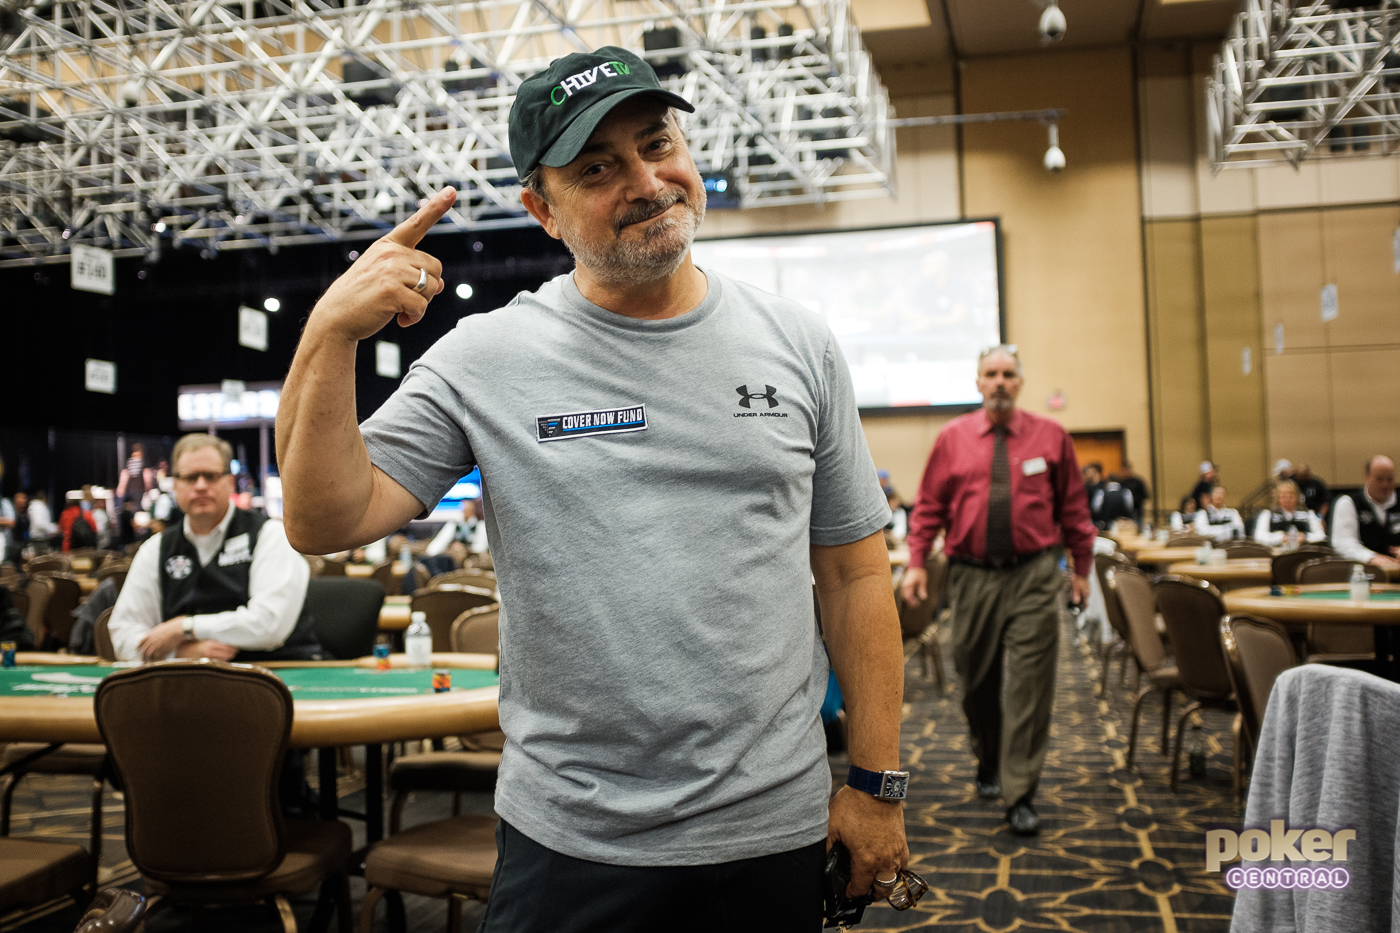 Kevin Pollack is ready to battle in the 2019 WSOP Main Event!